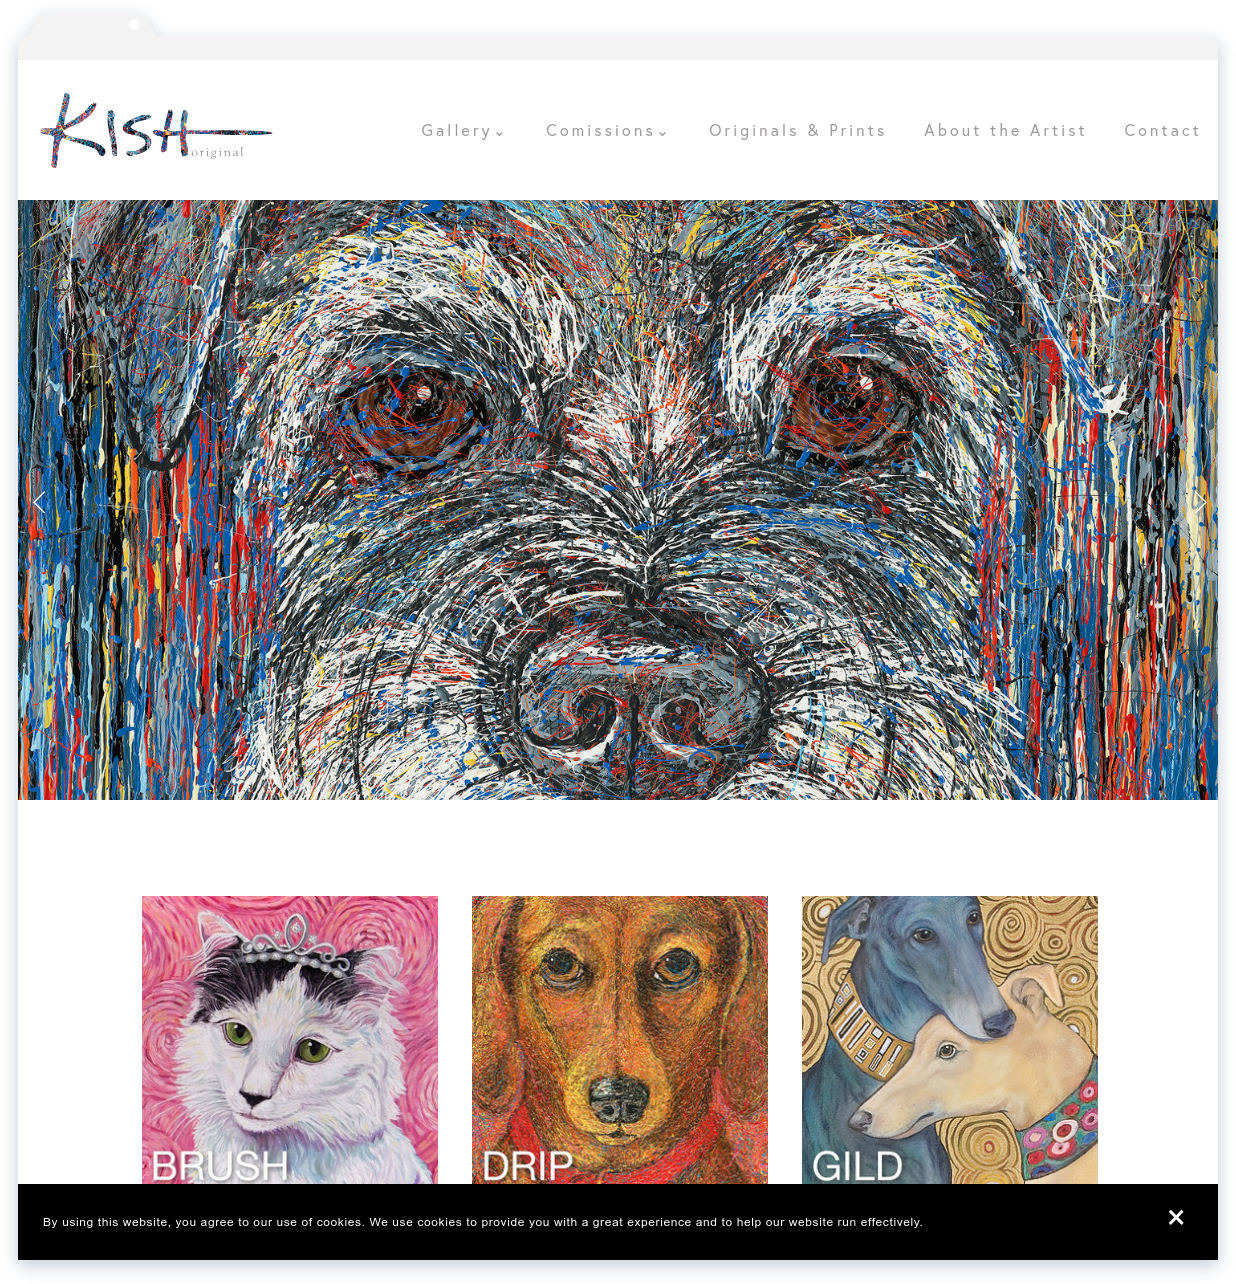 "Kish Original, Painter - ""I absolutely love my website. Lisa took my vision and made it a reality!""- Gretchen Serrano"